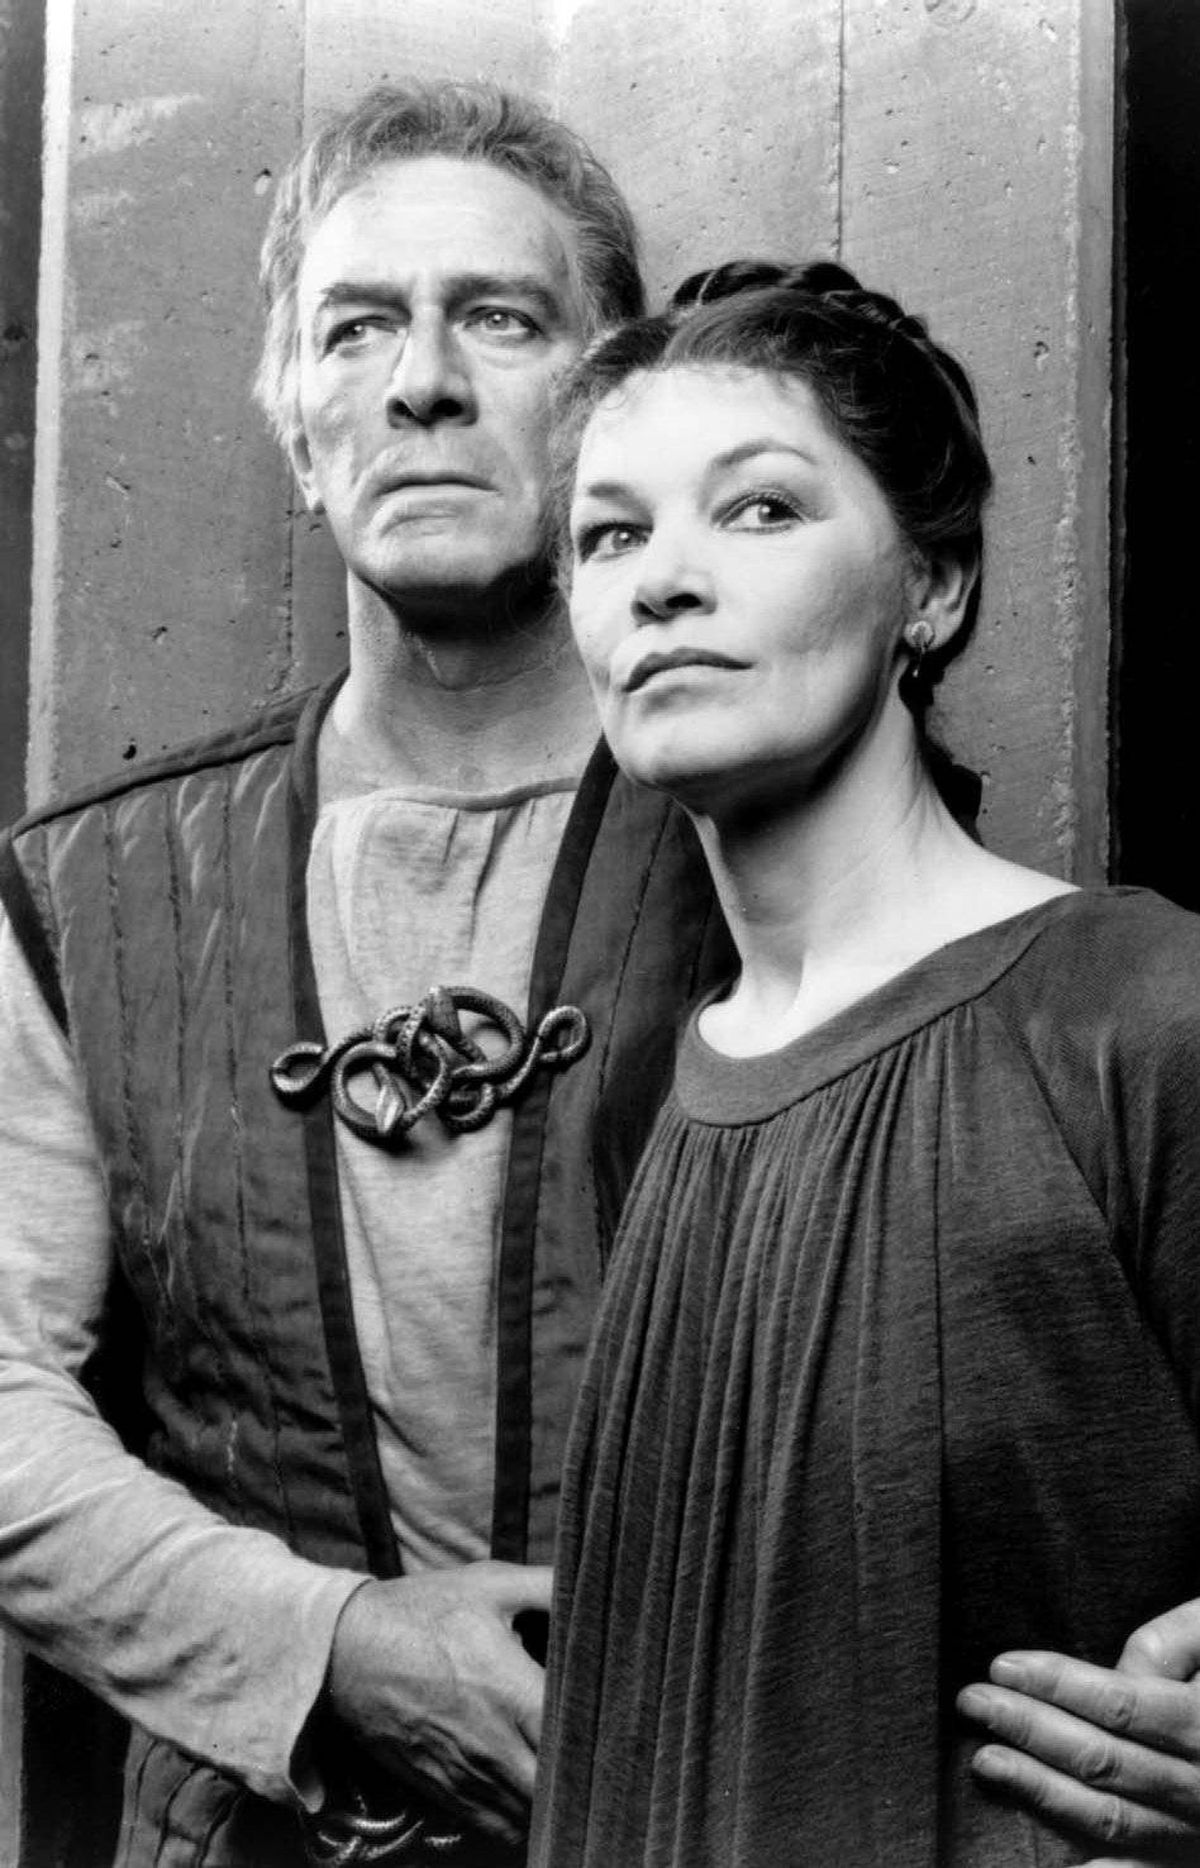 Christopher Plummer and Glenda Jackson in Shakespeare's Macbeth. The production played at Toronto's O'Keefe Centre in March, 1988.